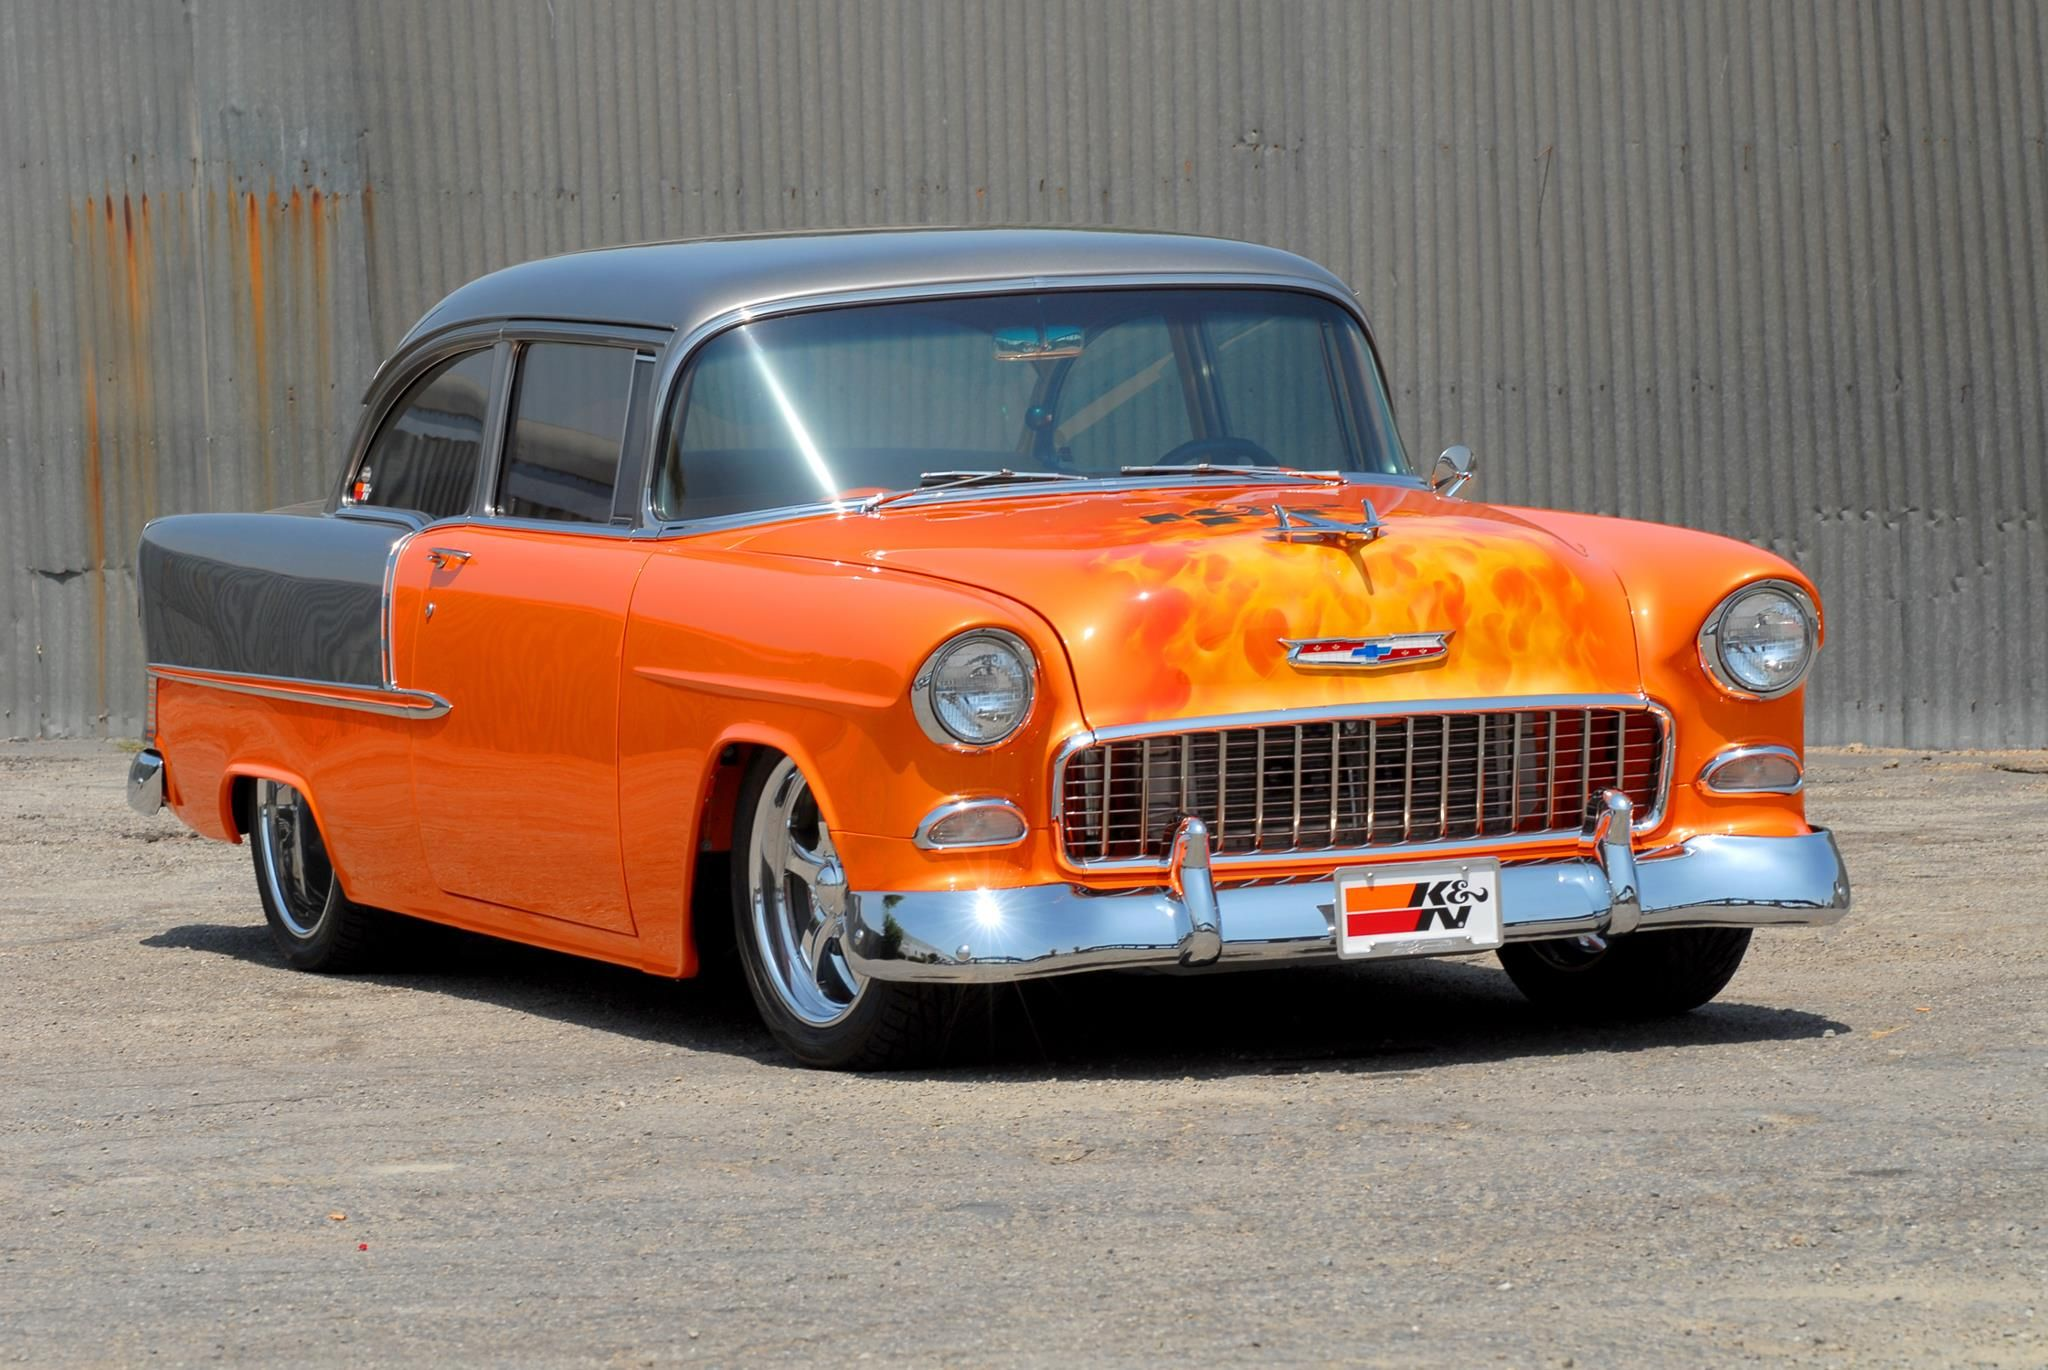 Beautiful 55 Chevy with custom K & N paintjob. | CARS: American ...